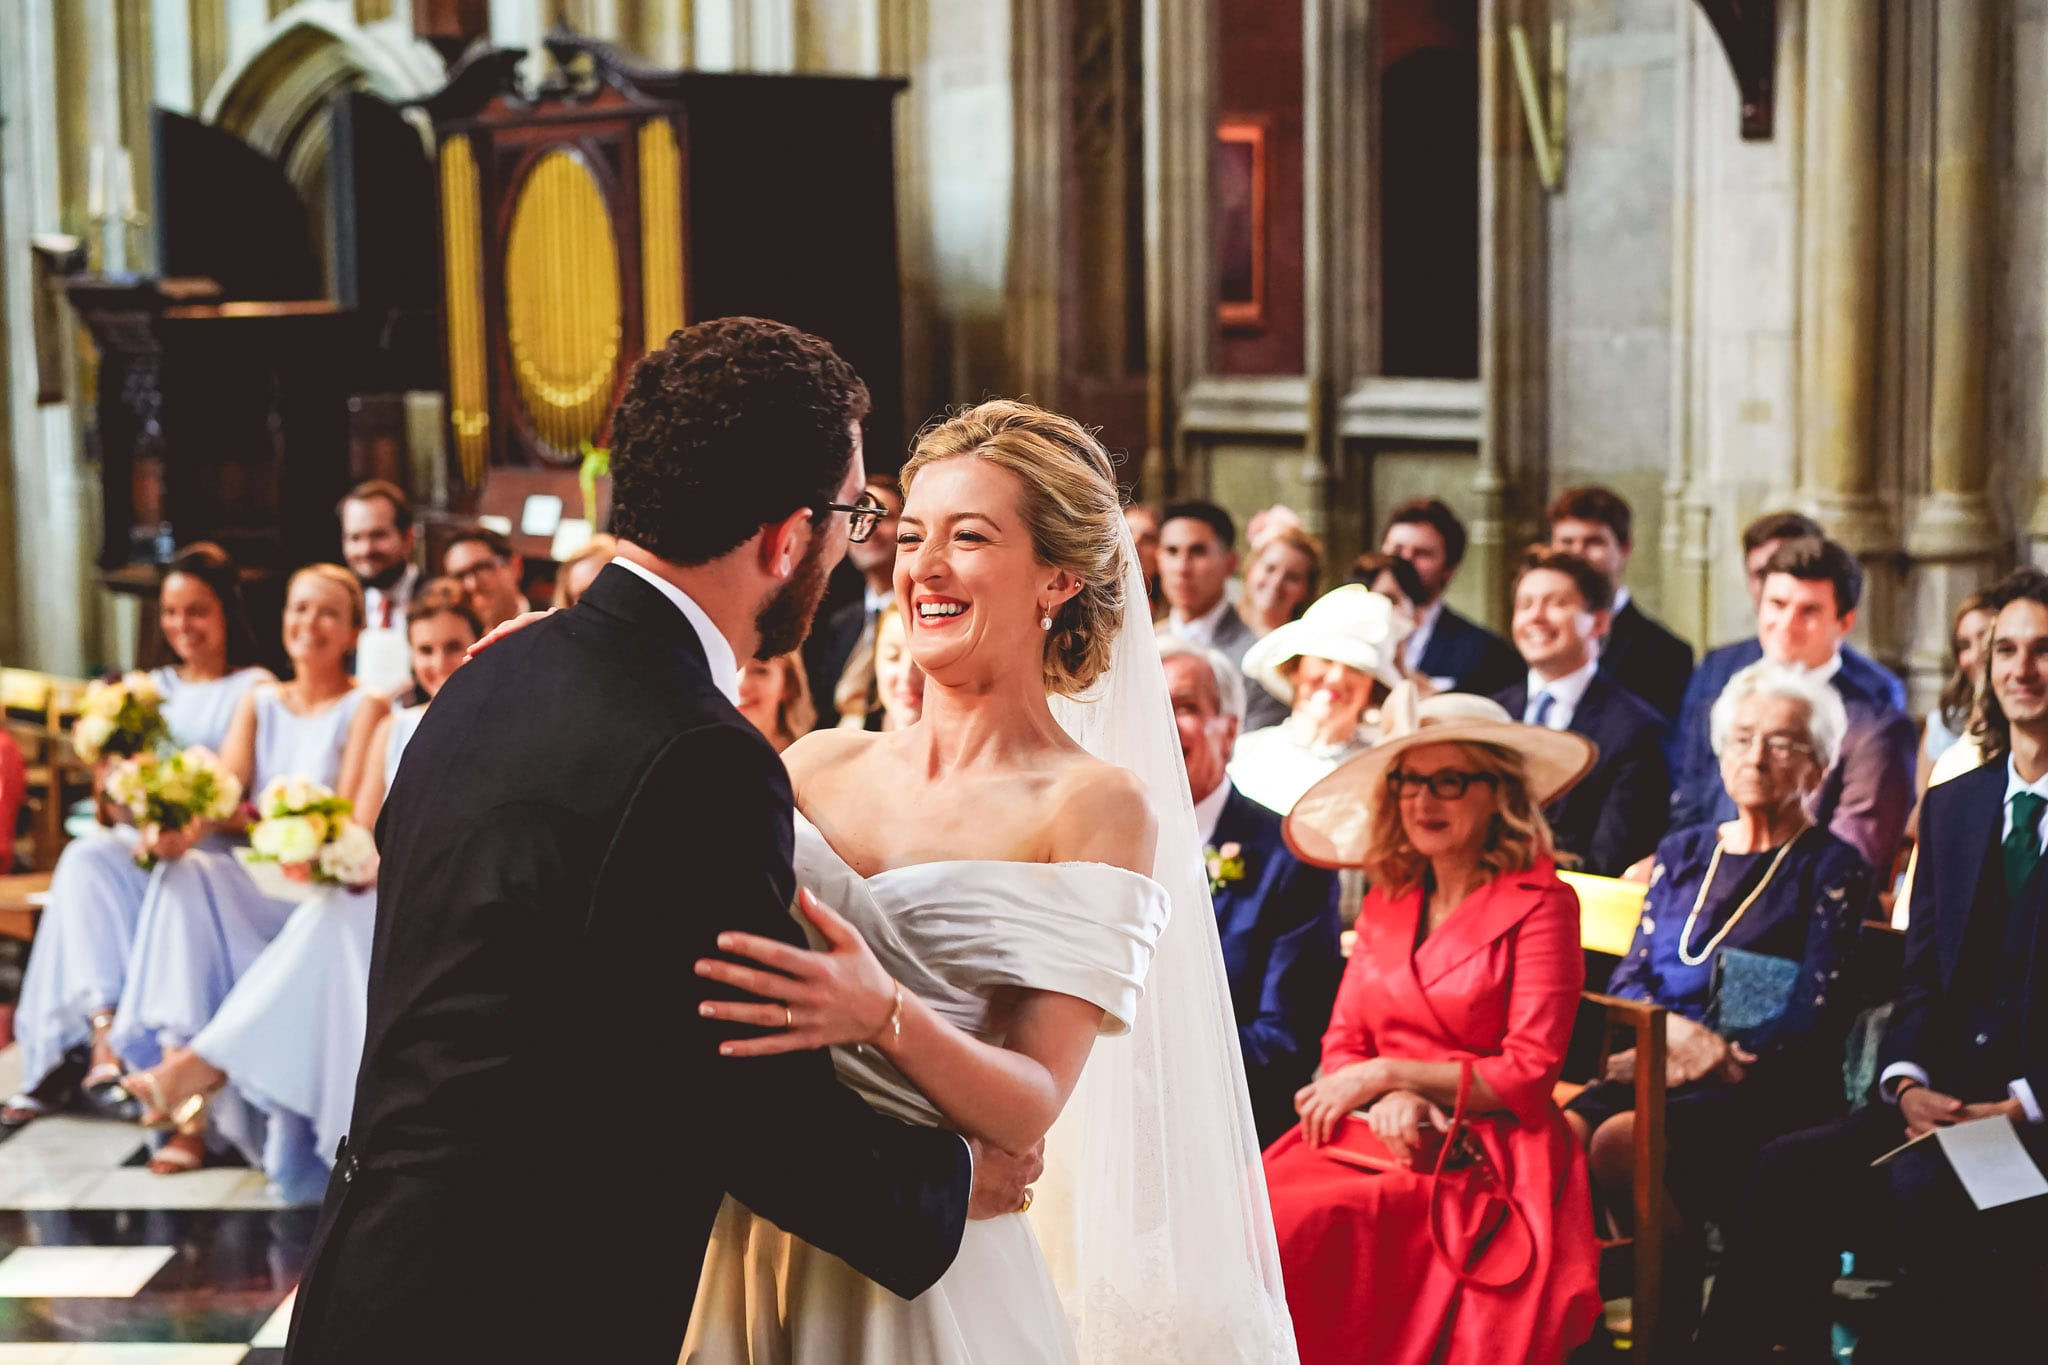 First kiss at a wedding in Eton College Chapel